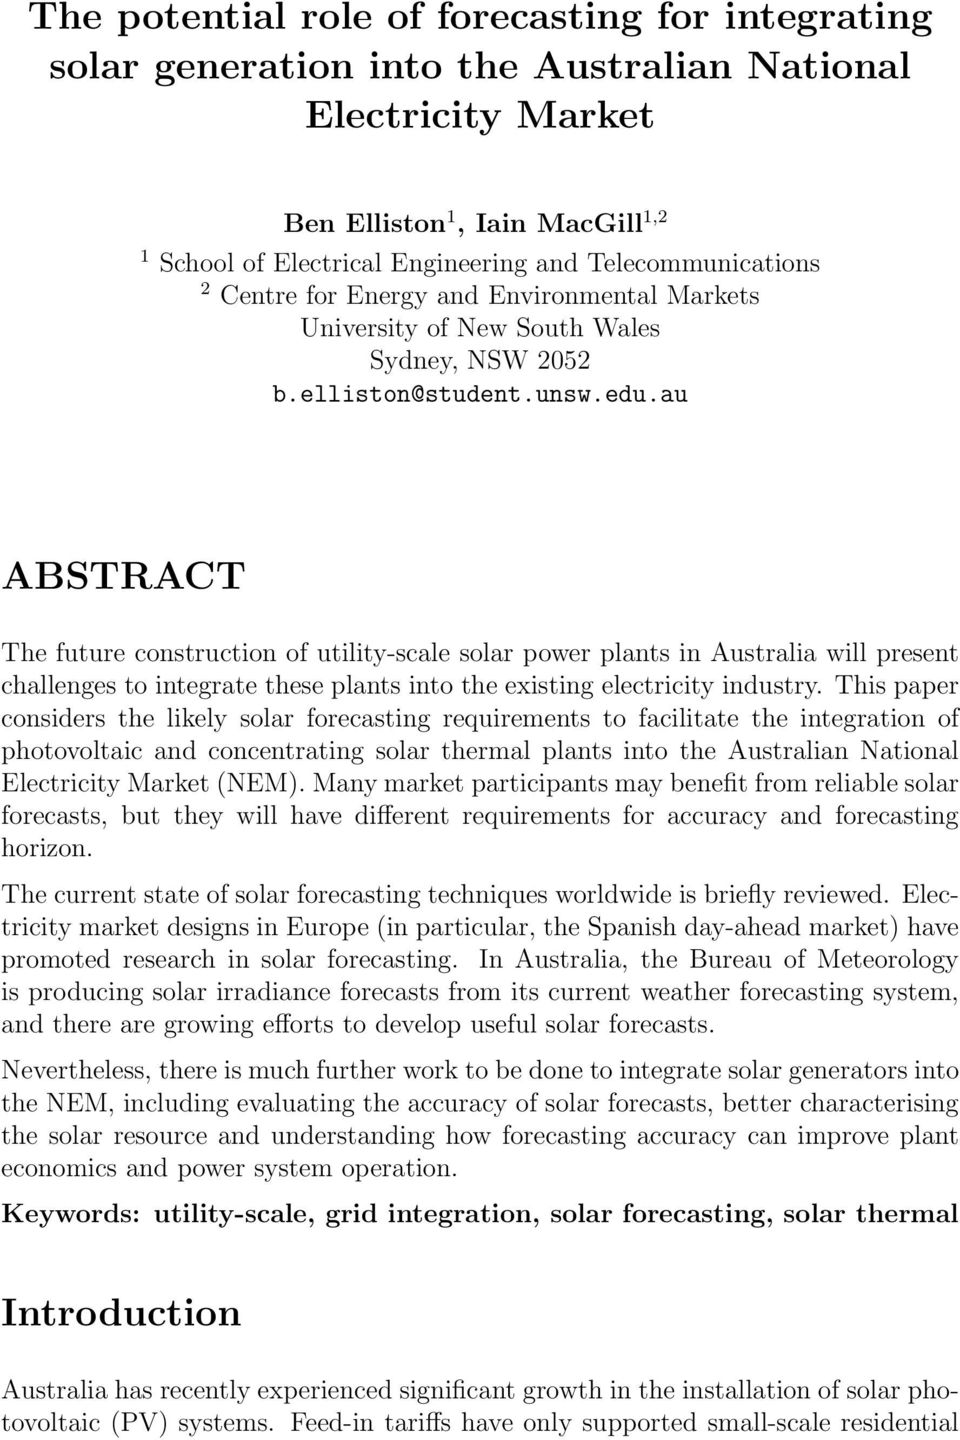 au ABSTRACT The future construction of utility-scale solar power plants in Australia will present challenges to integrate these plants into the existing electricity industry.